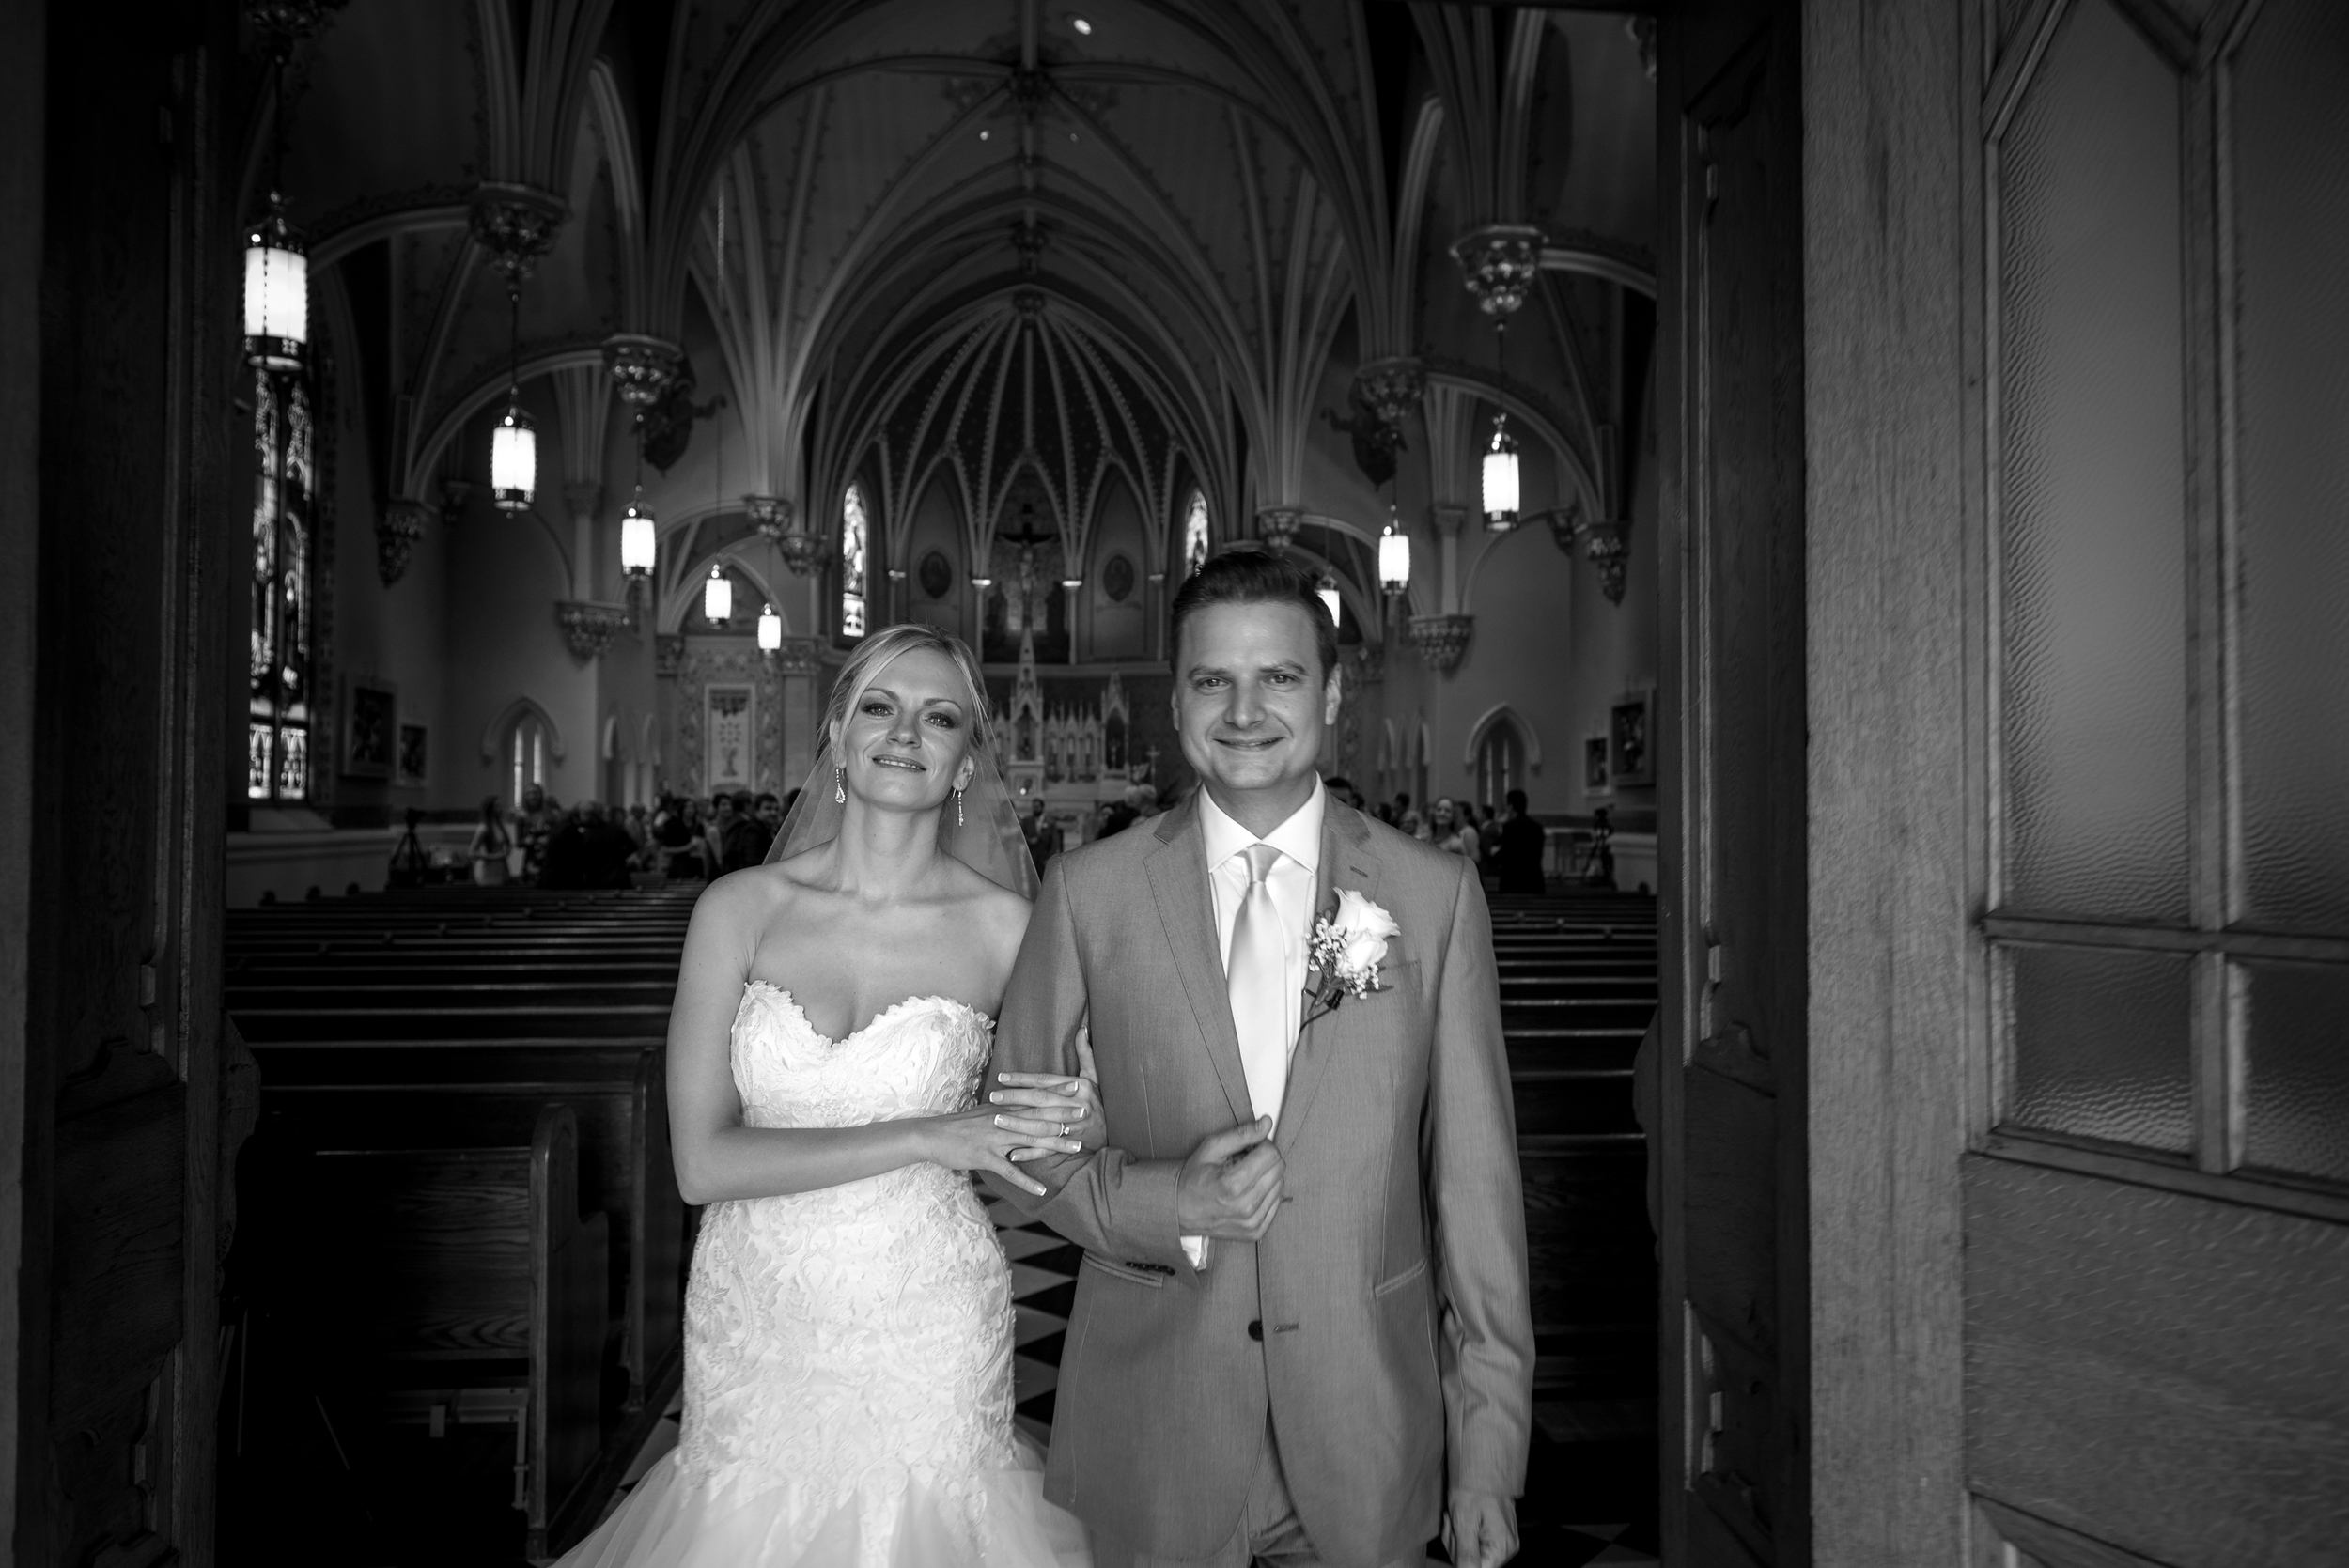 012Koper-Ekiert-Roanoke-Wedding-Virginia-Photographer-mattrossphotography.com.jpg